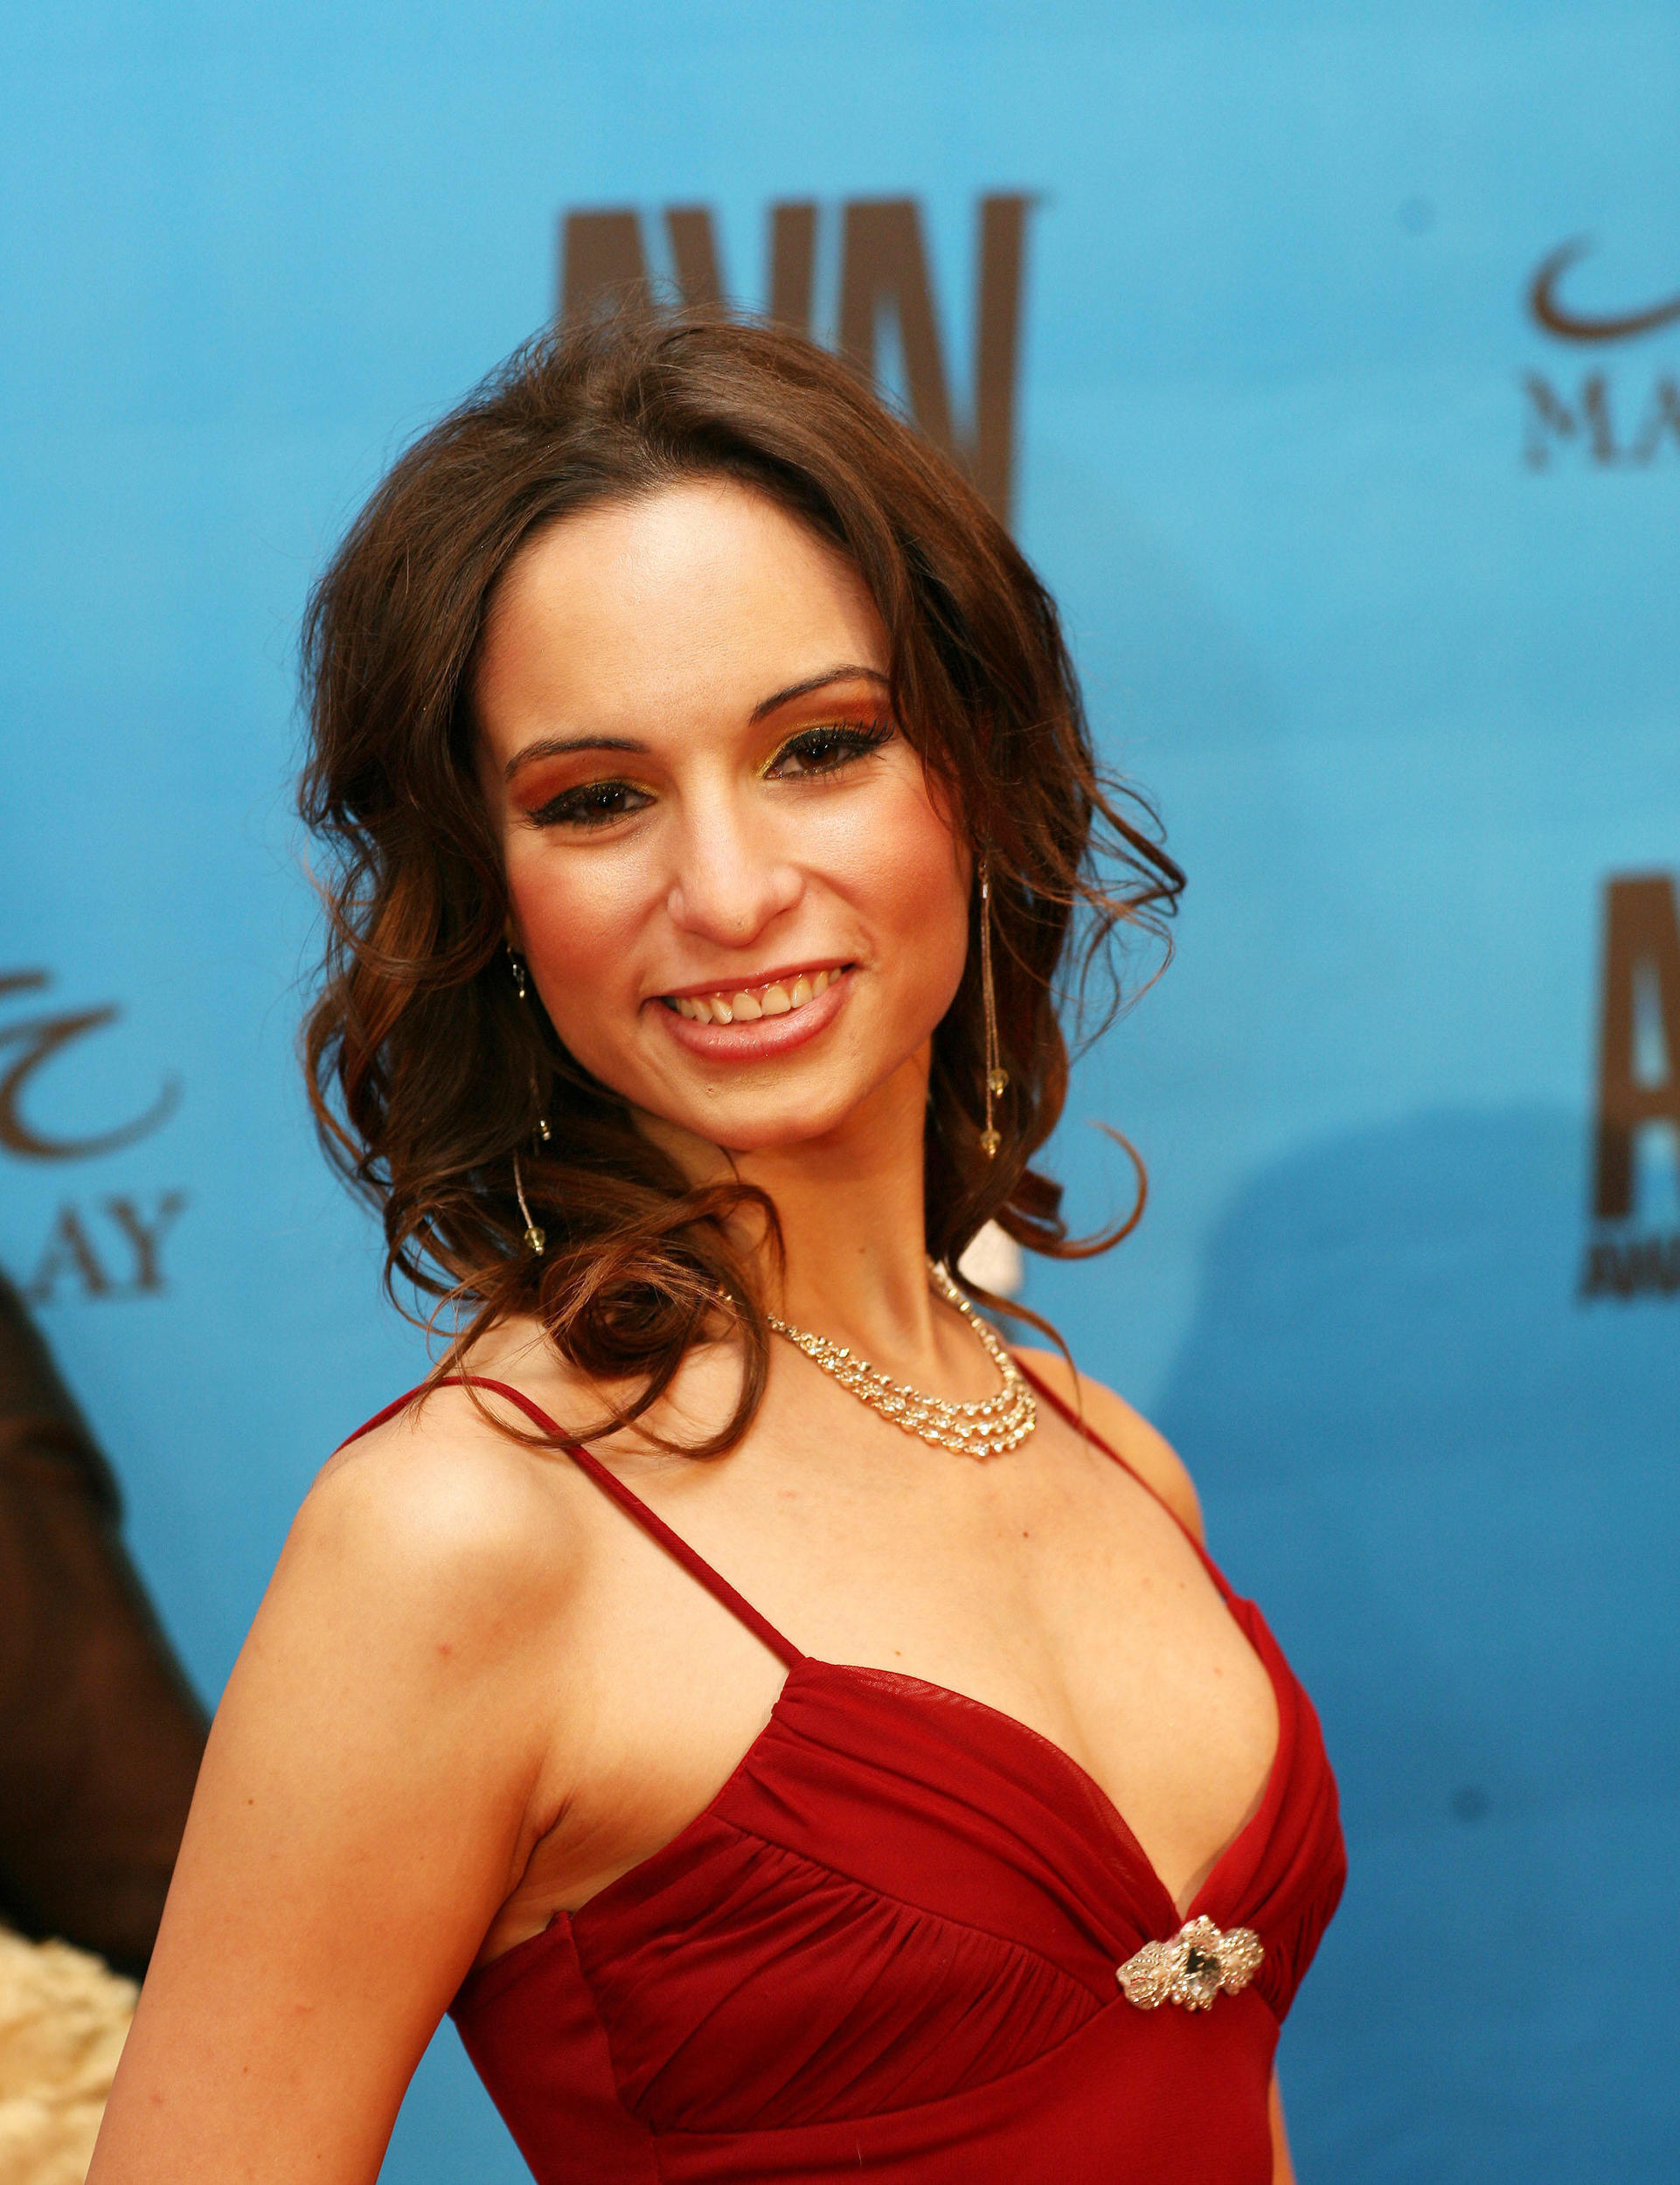 porn actor died she